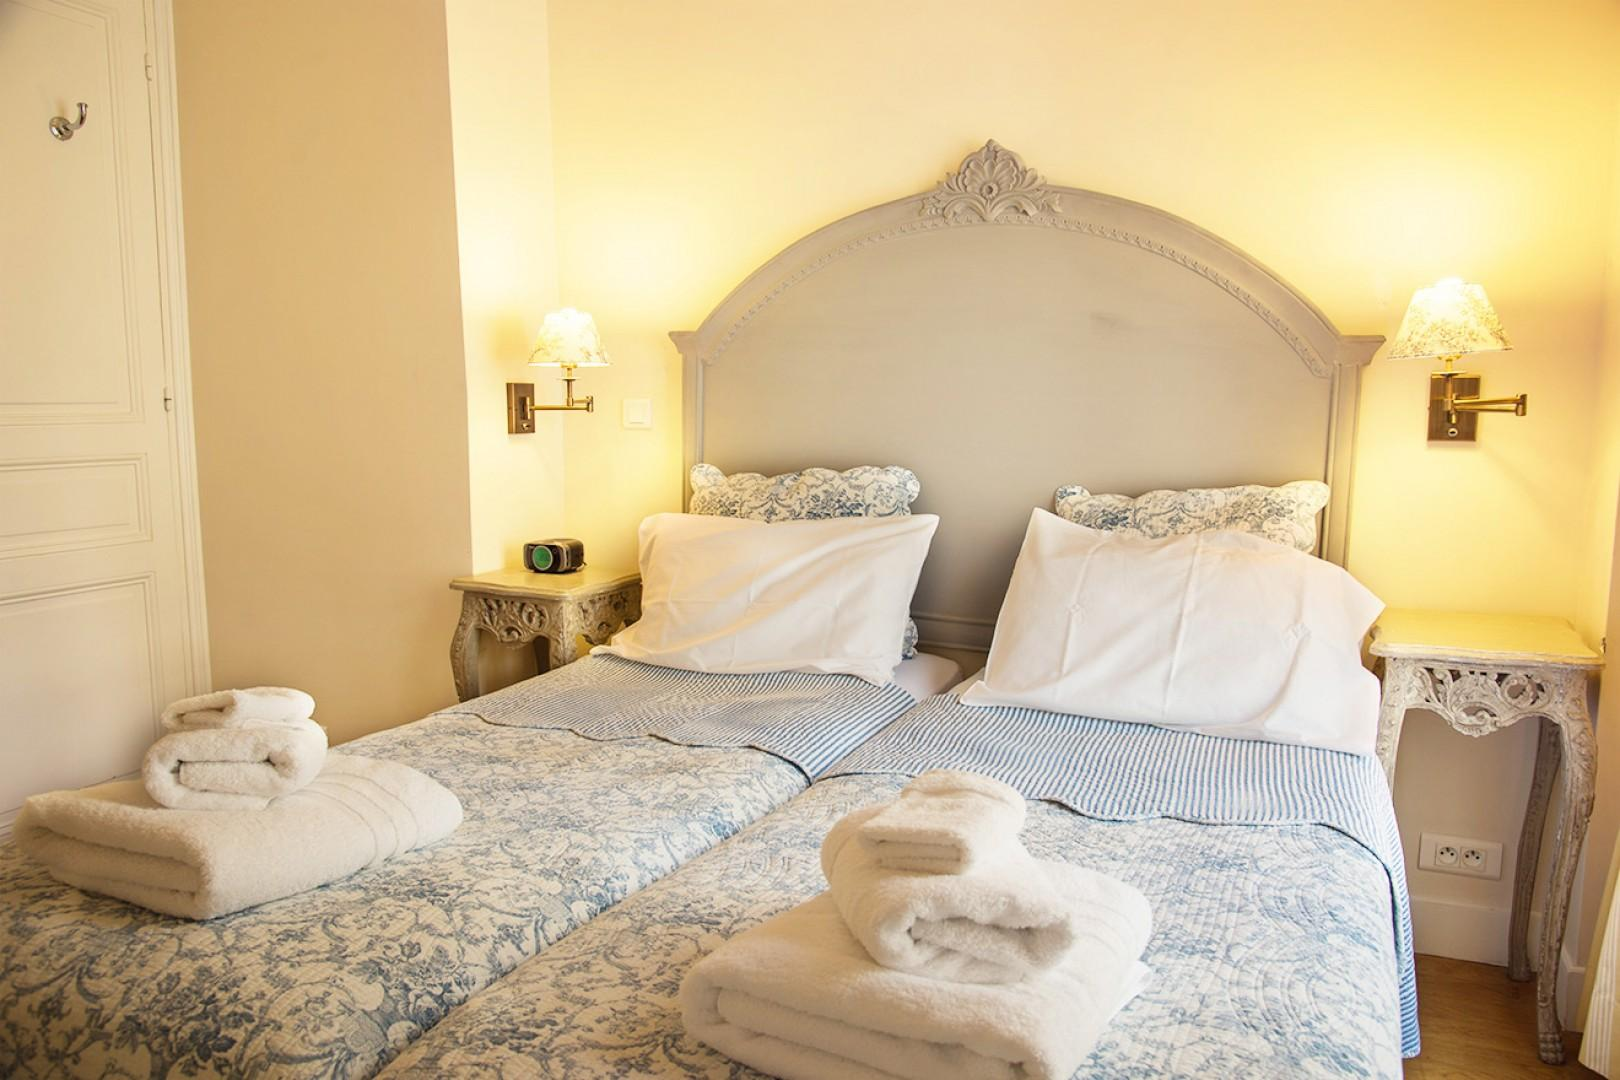 Get a good night's sleep in the luxury linens.